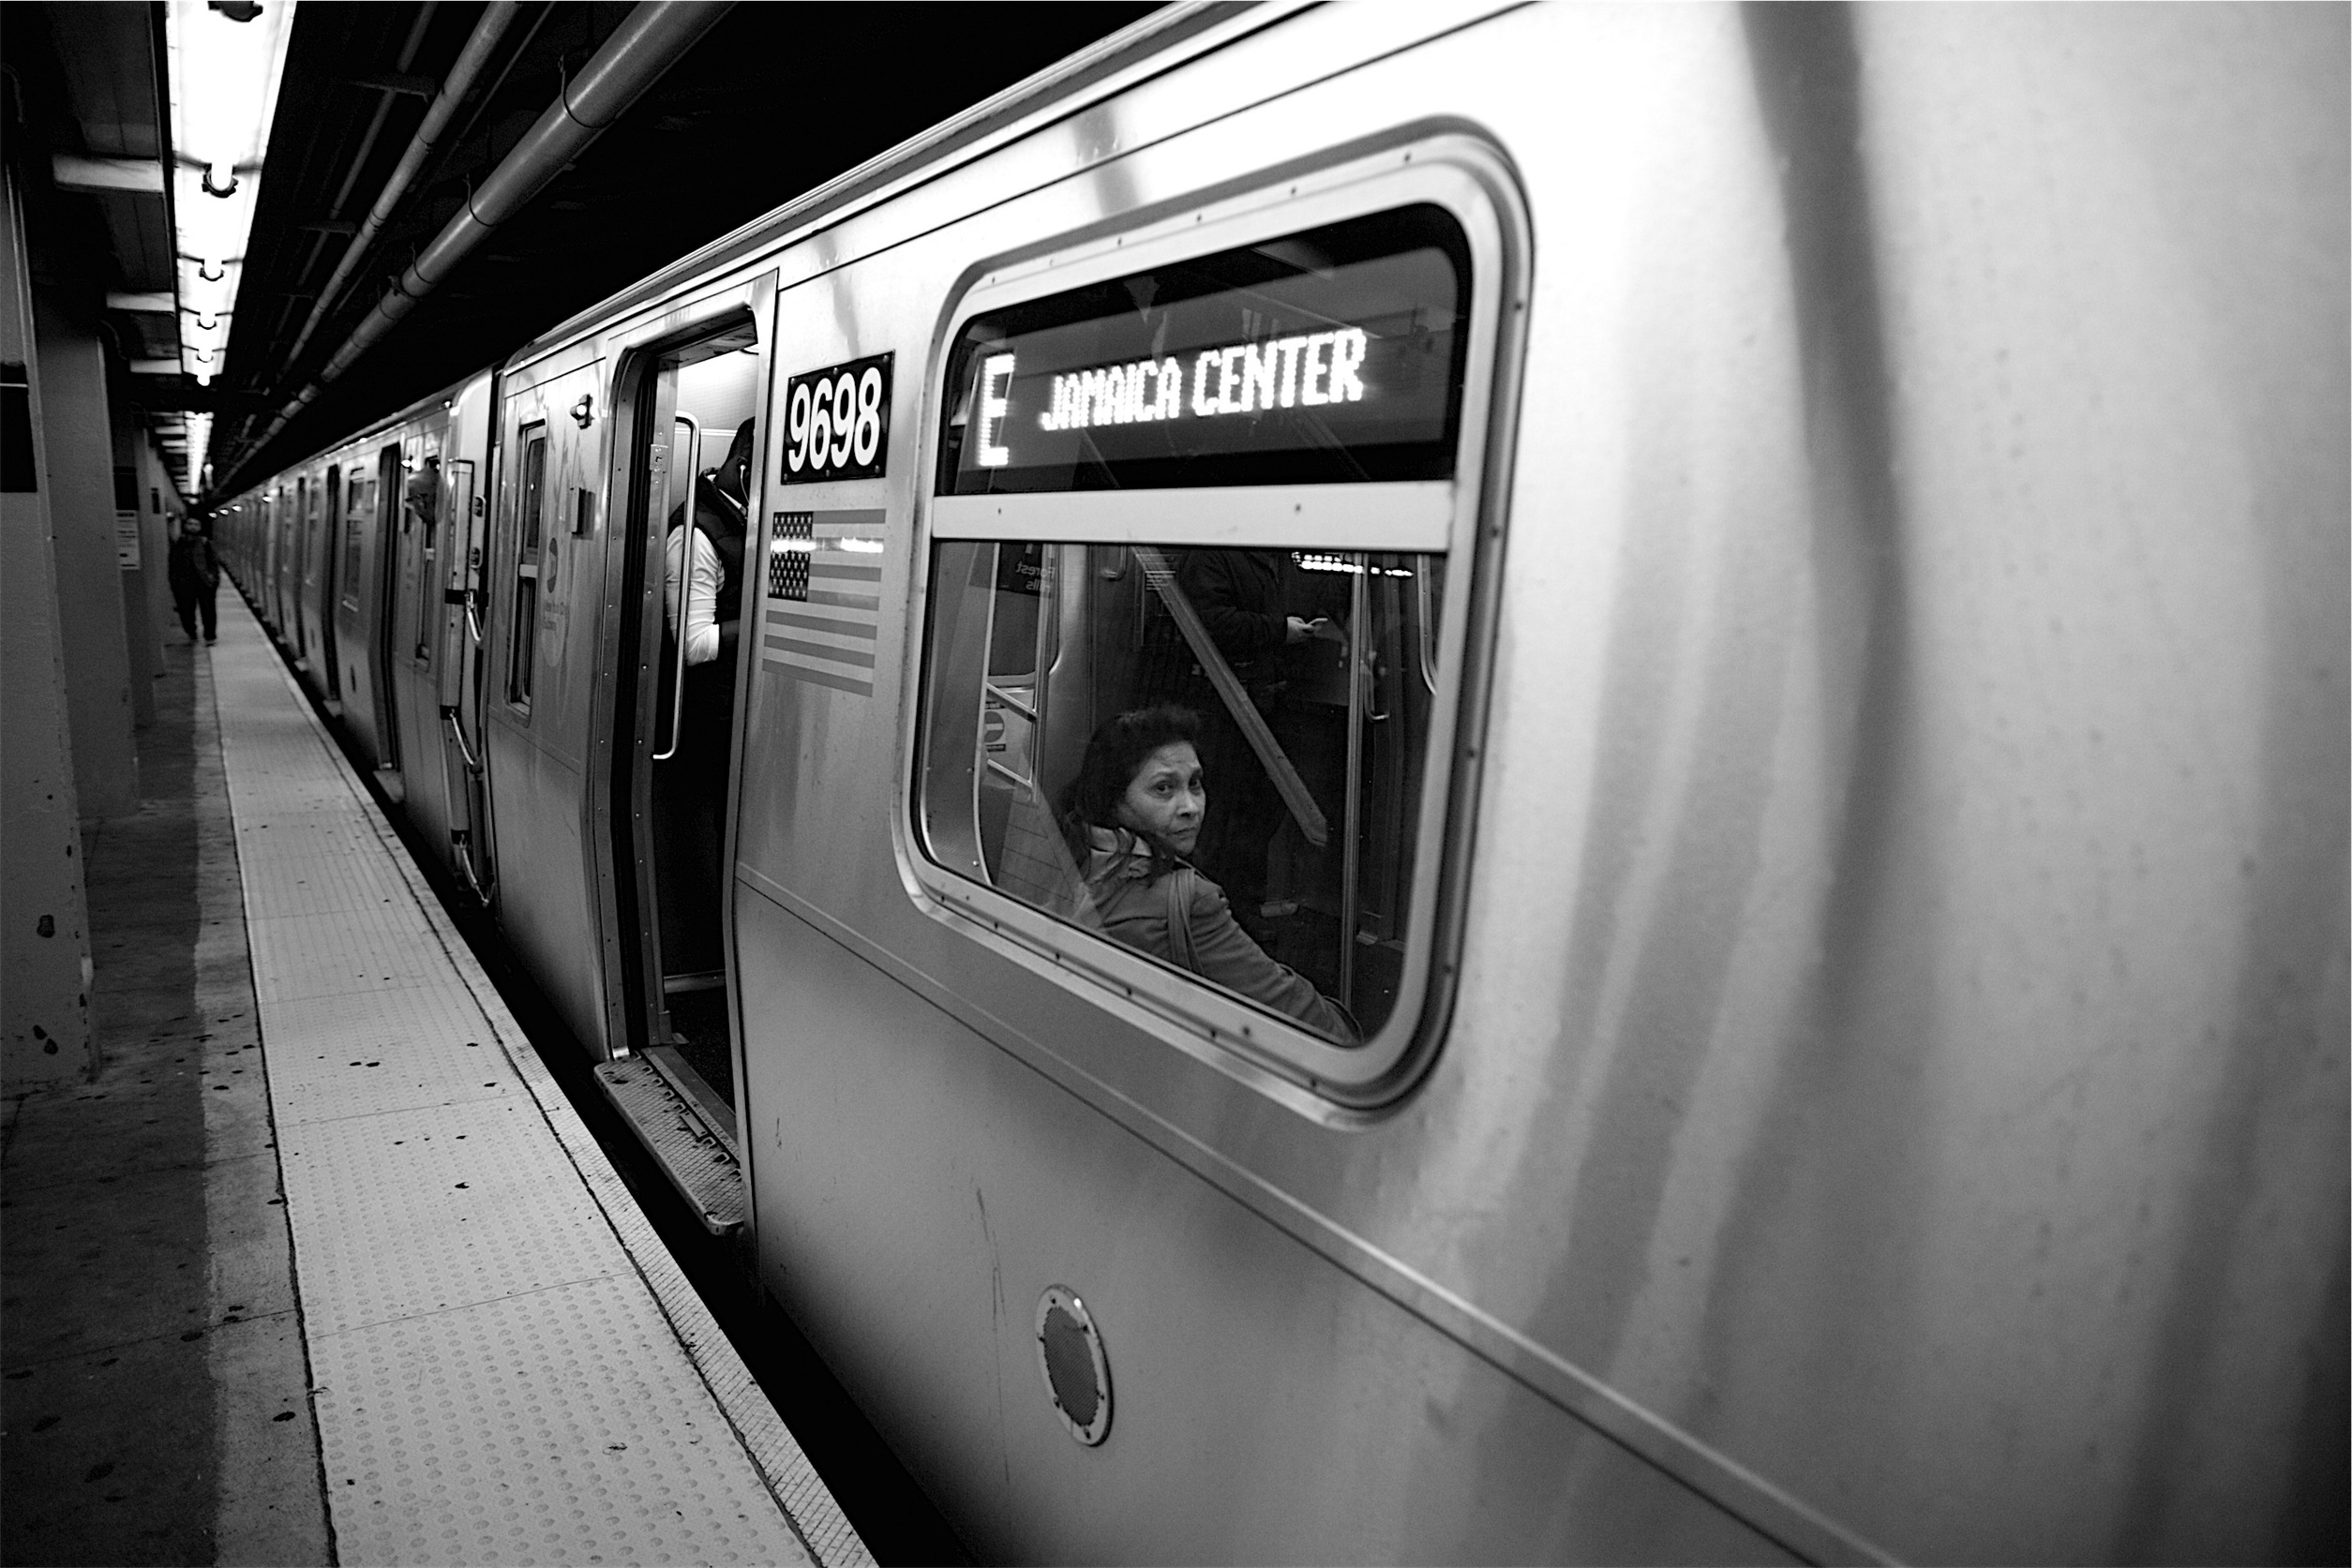 B/W photo of the E train, by Sean DuBois